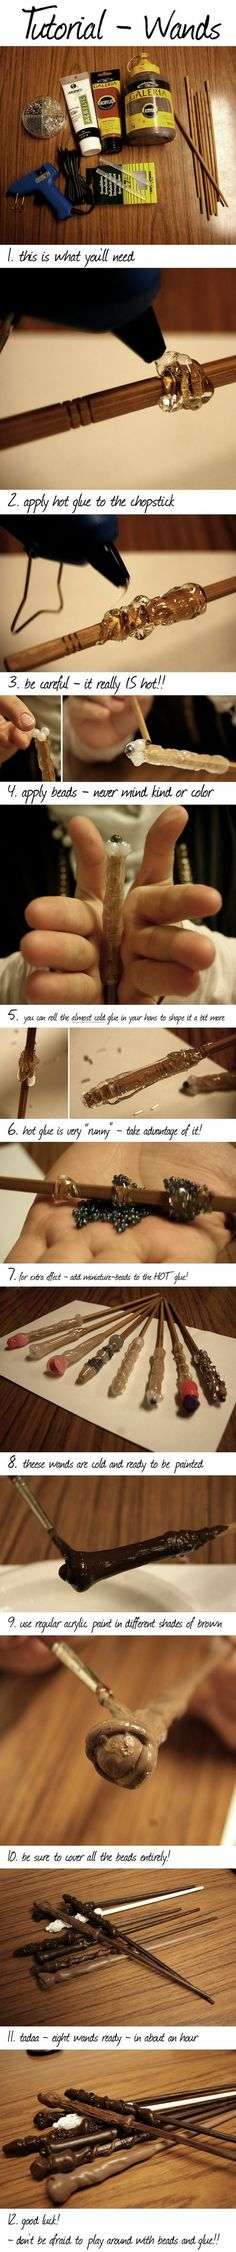 I am so going to make my own wand!!!